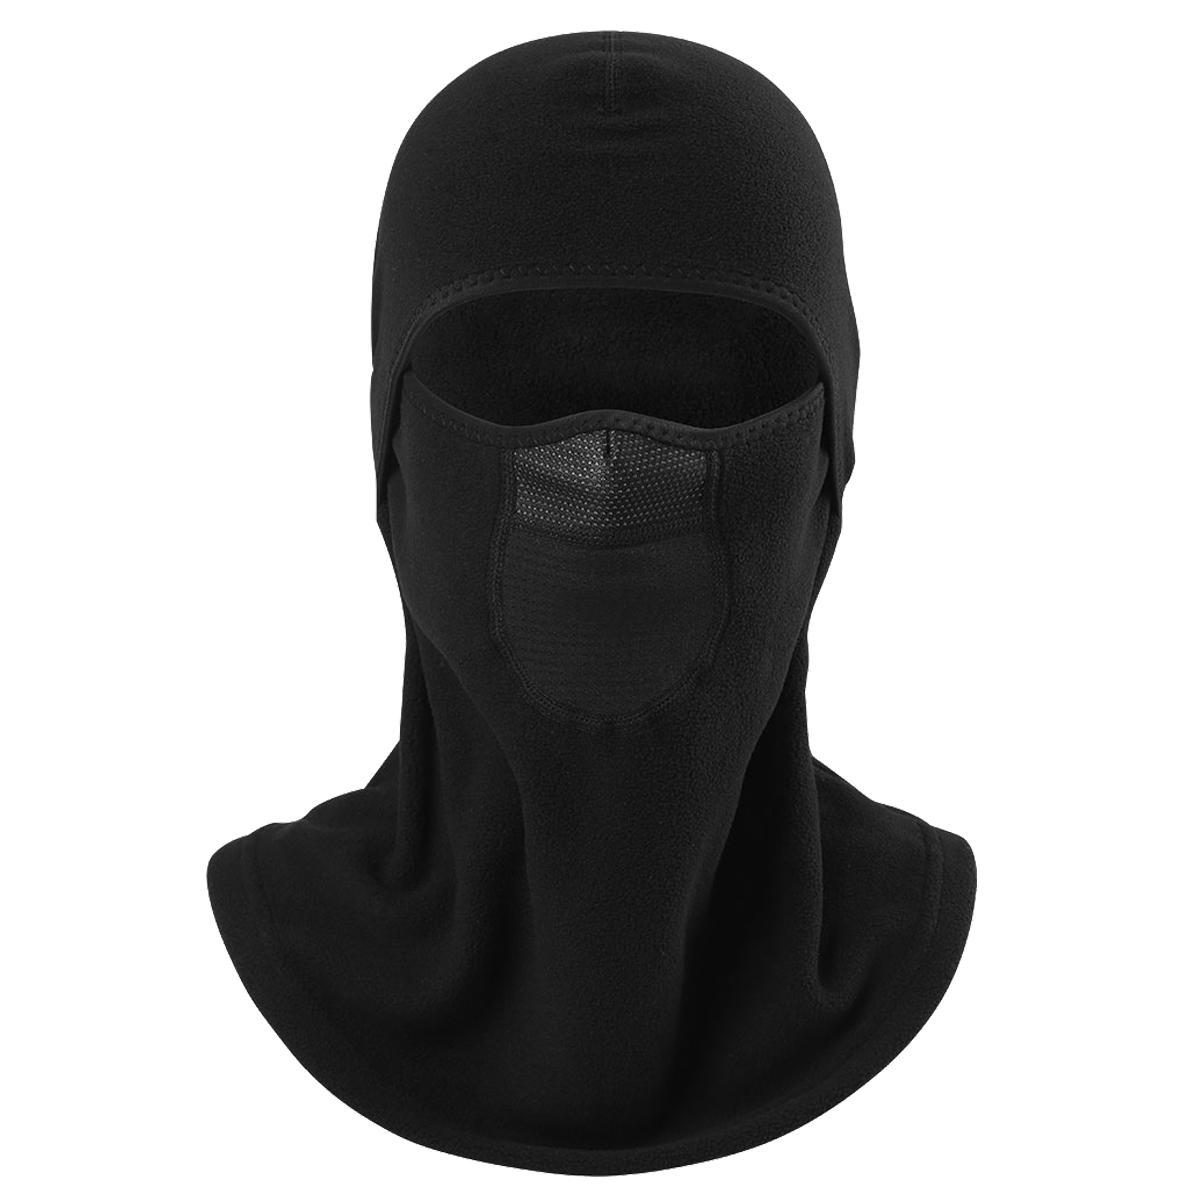 Cold Weather Winter Wool Thermal Polar Fleece Neck Warmer Balaclava Breathable Windproof Bicycle Snowboard Full Face Mask Black